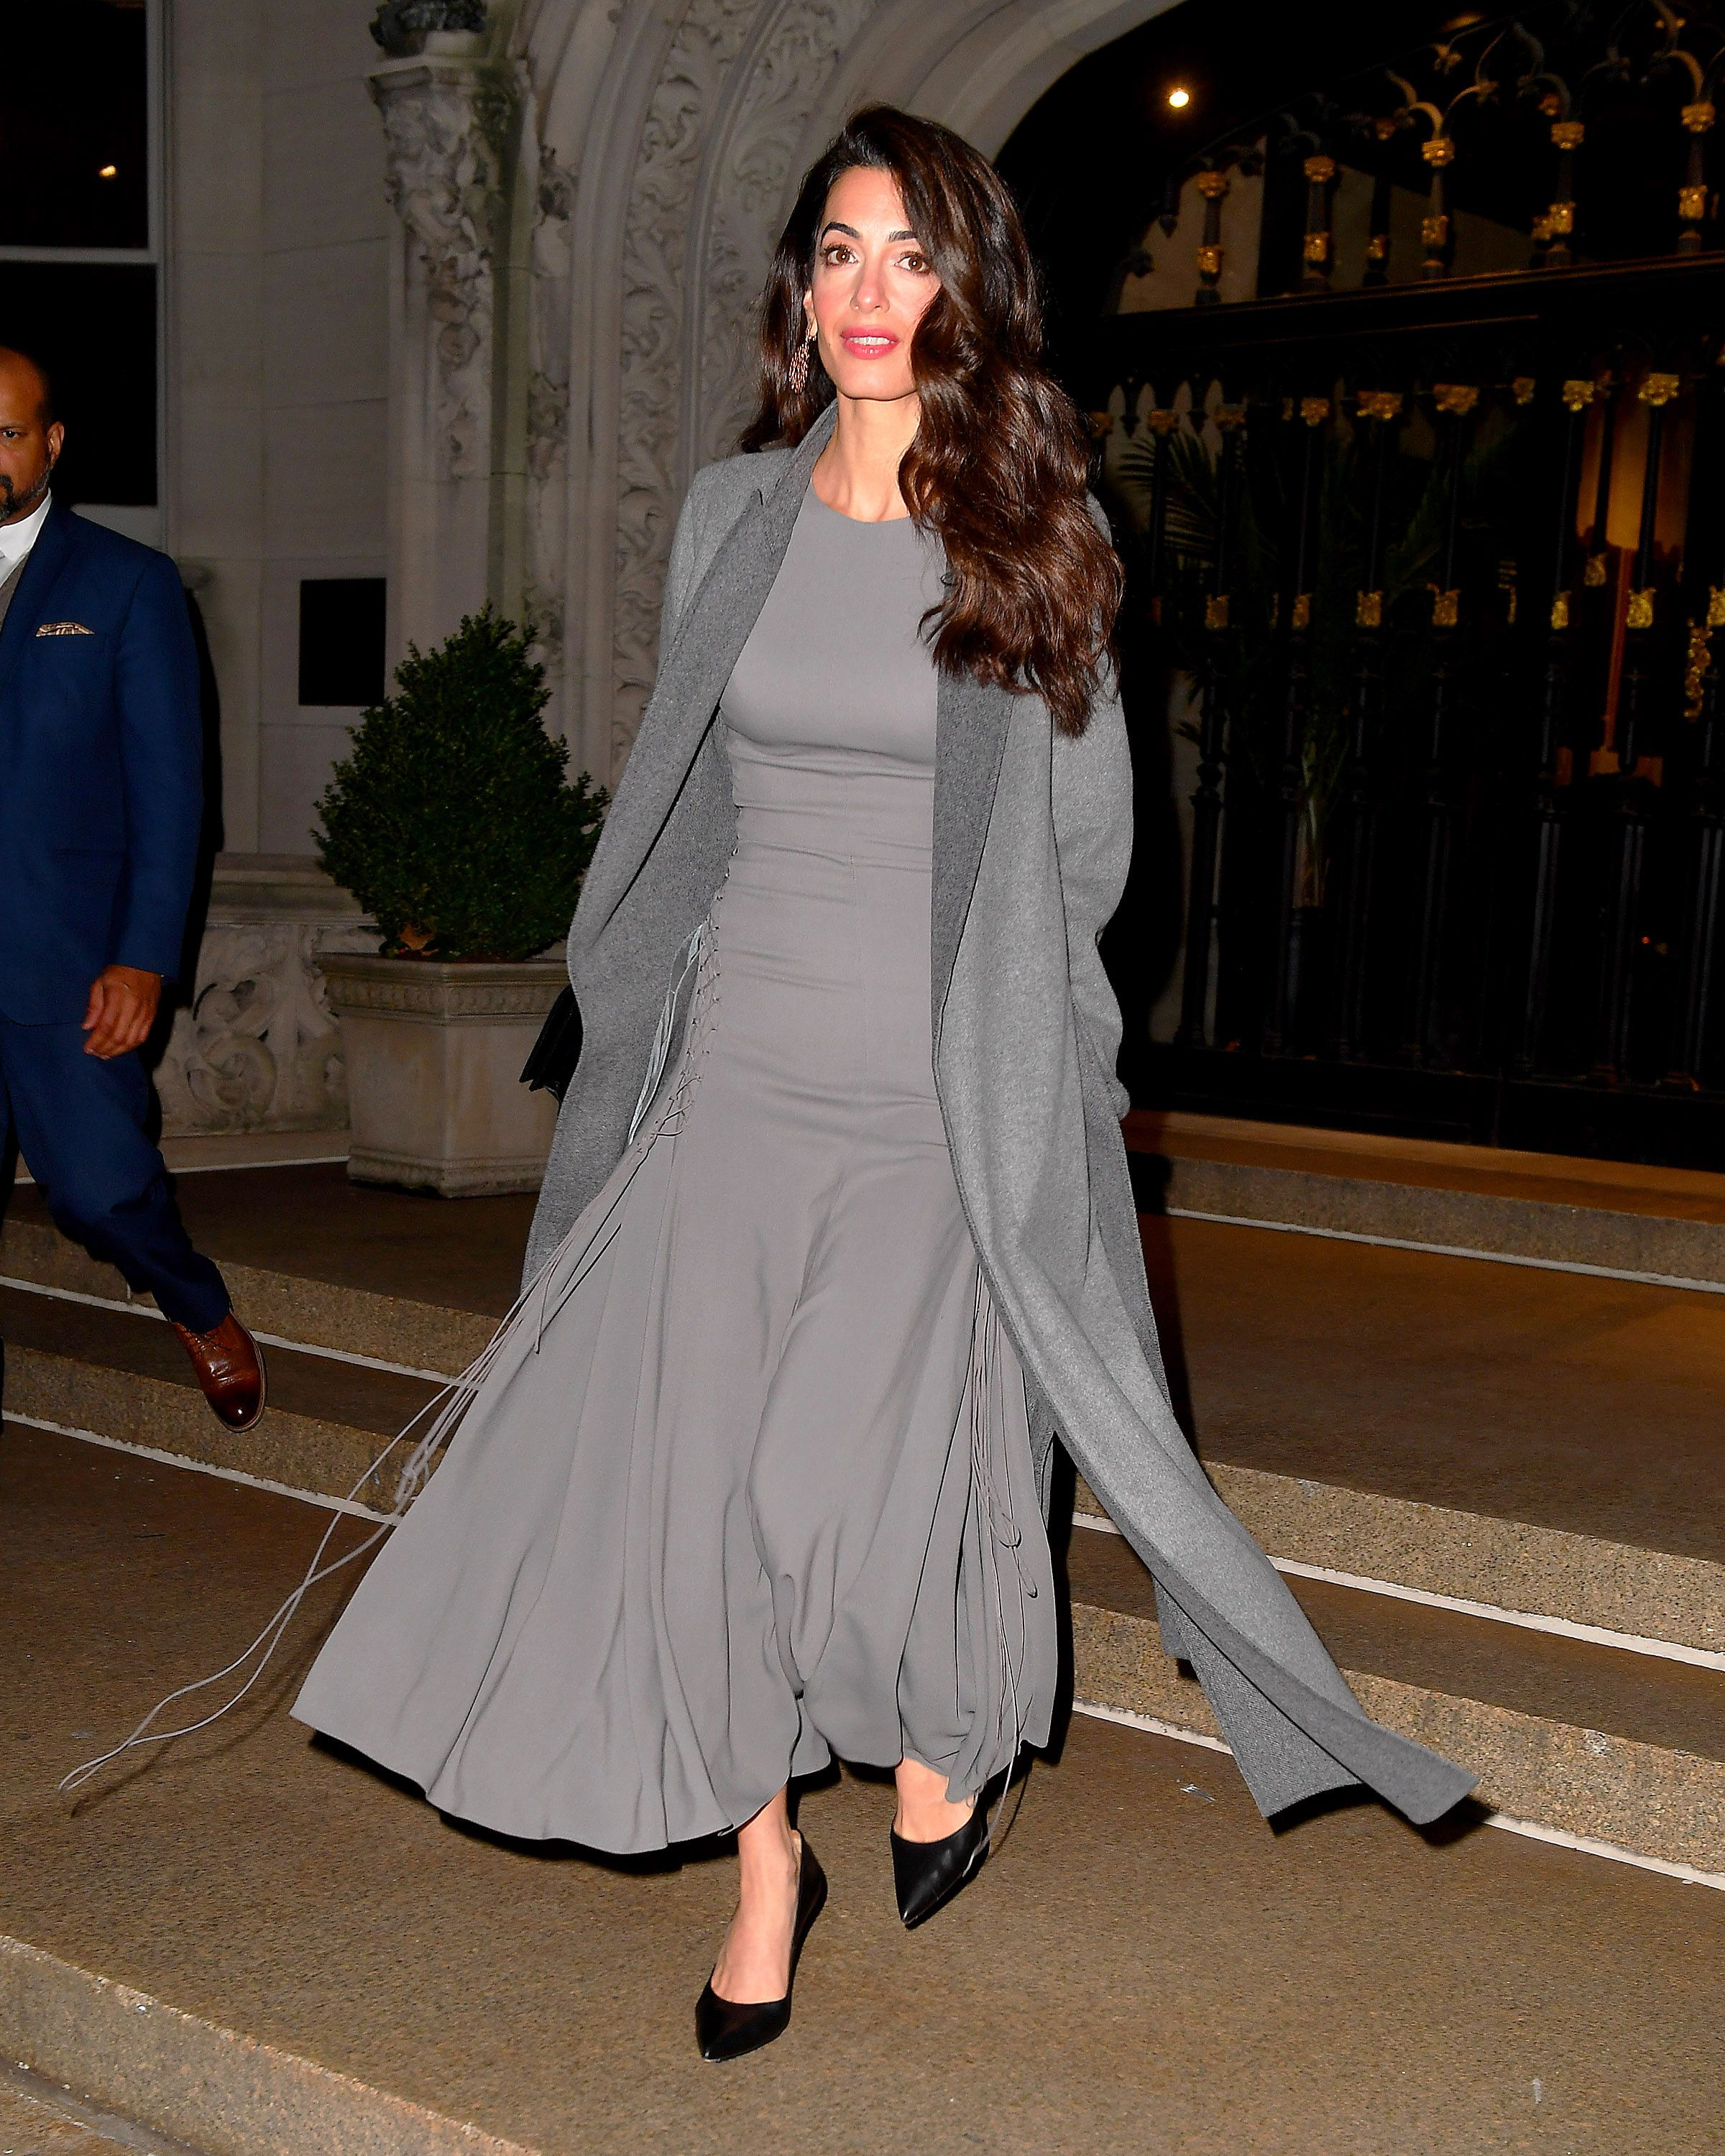 EXCLUSIVE: Amal Clooney seen wearing a grey coat and grey dress in New York City